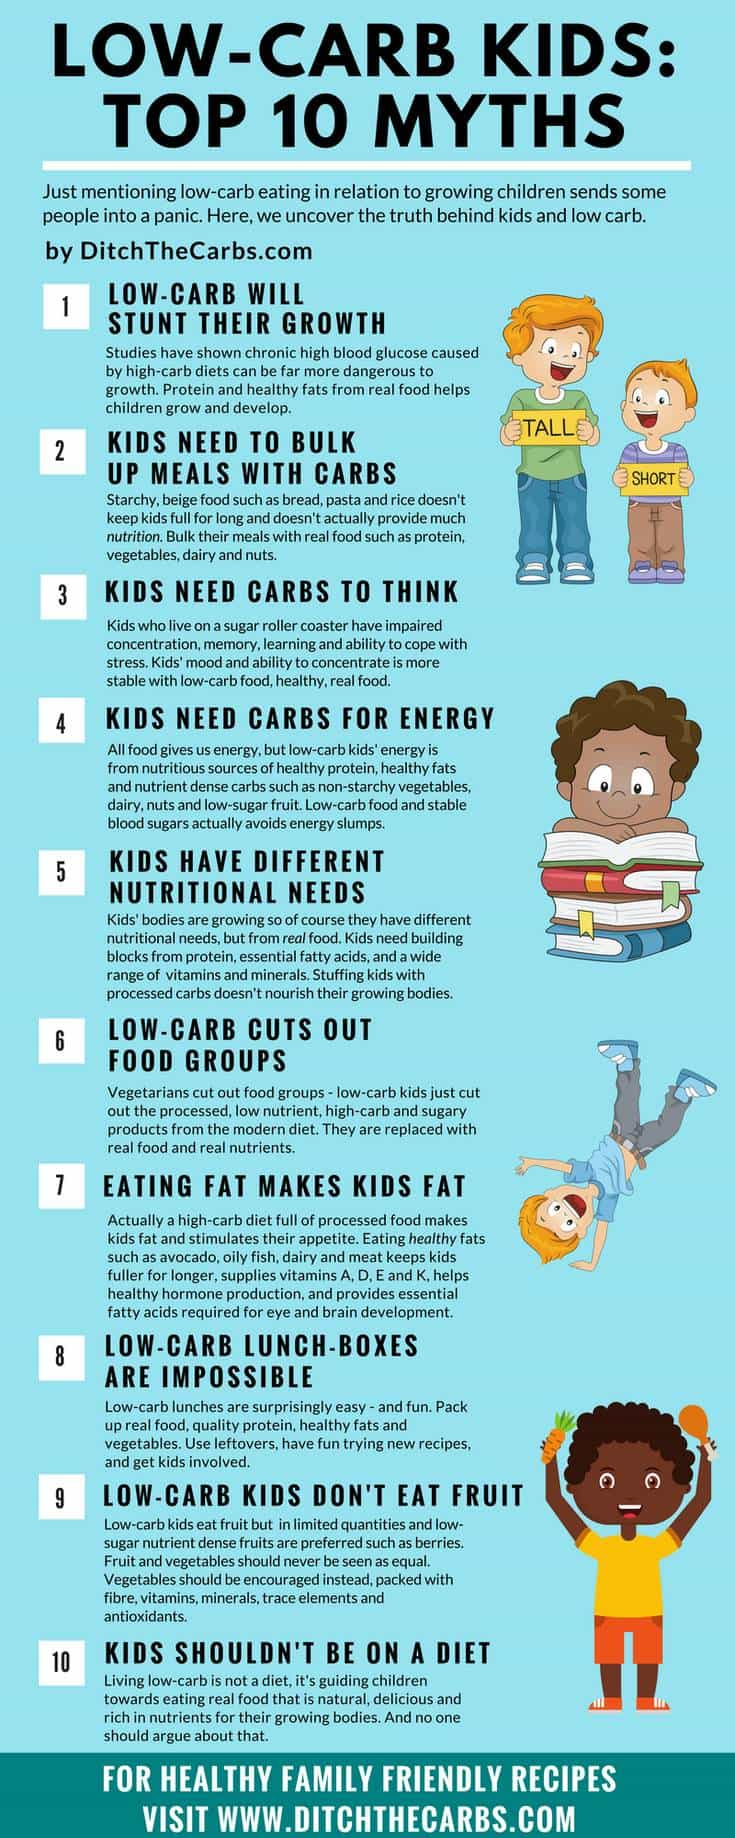 Top 10 Myths About Low Carb Kids Is It Dangerous Or Healthy